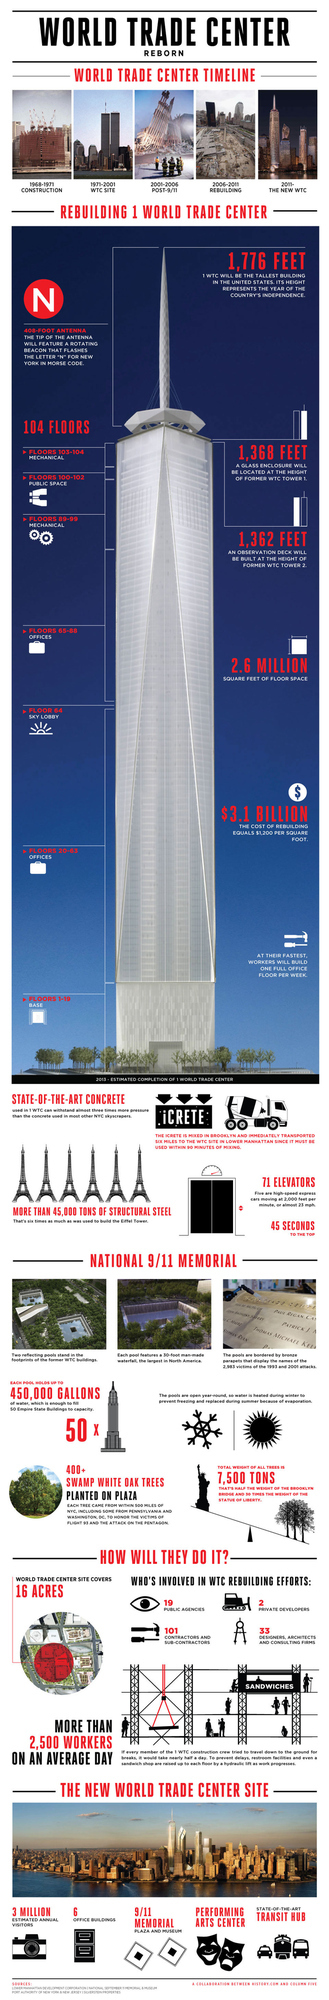 World Trade Center Reborn [Infographic]